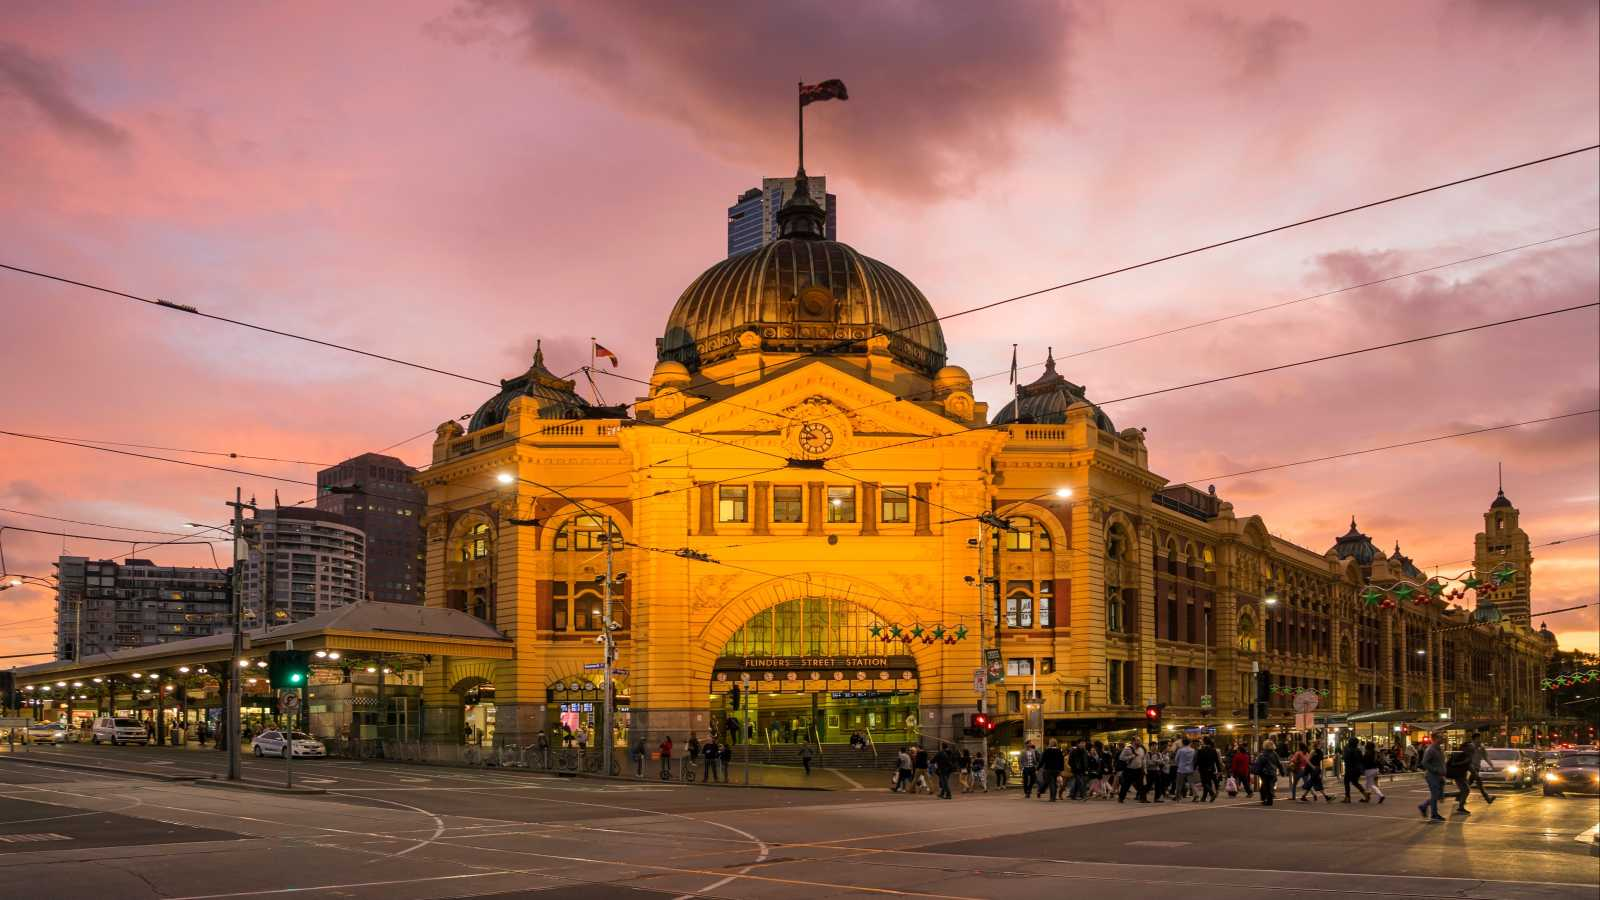 Flinders_Street_Station_in_Melbourne_Australien